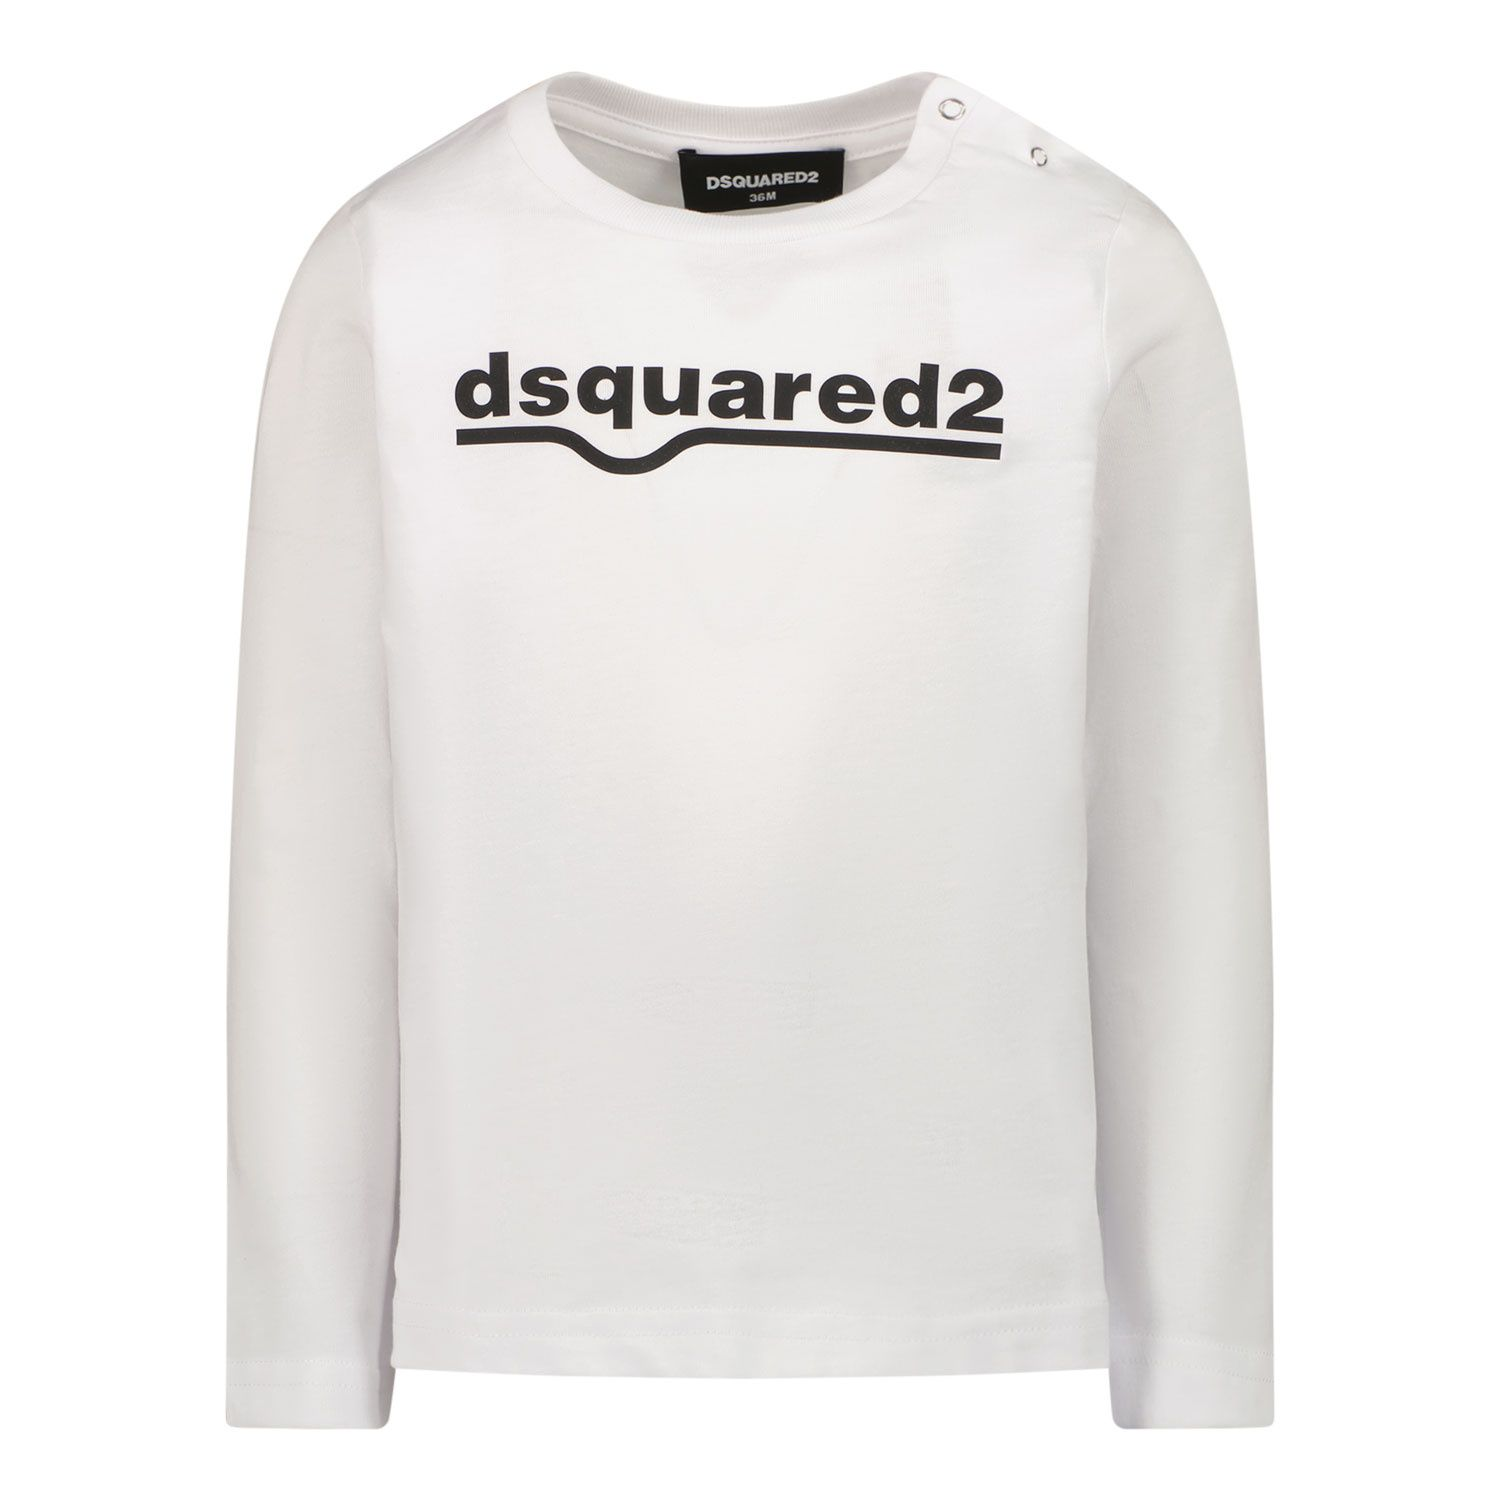 Picture of Dsquared2 DQ0550 baby shirt white